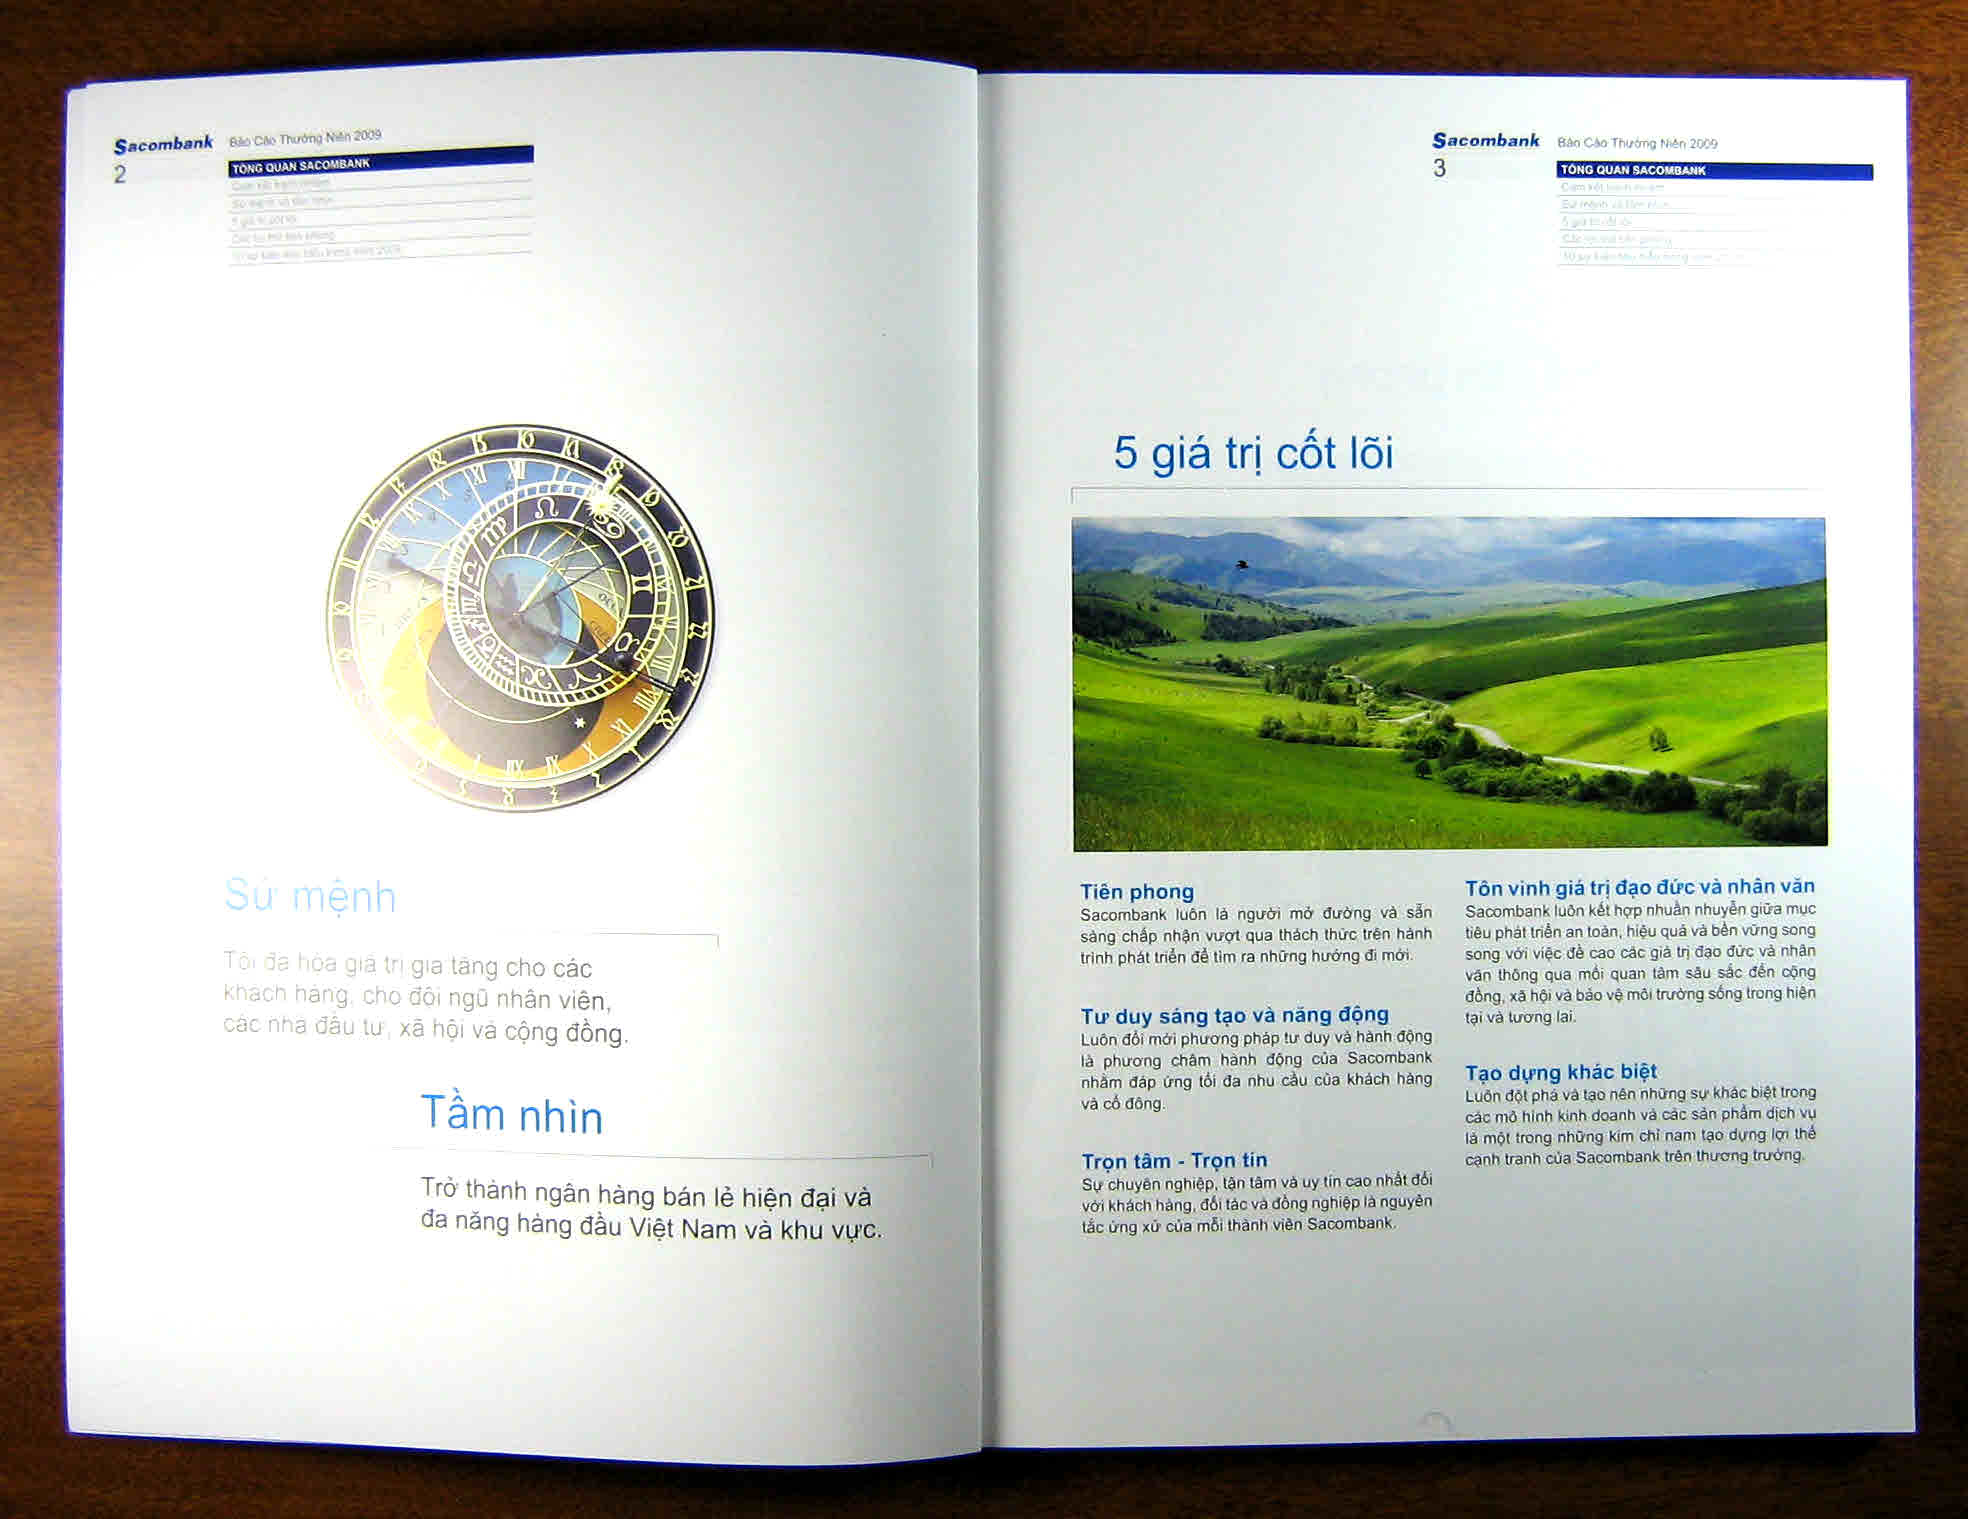 LACP 2009 Vision Awards Annual Report Competition Design ...